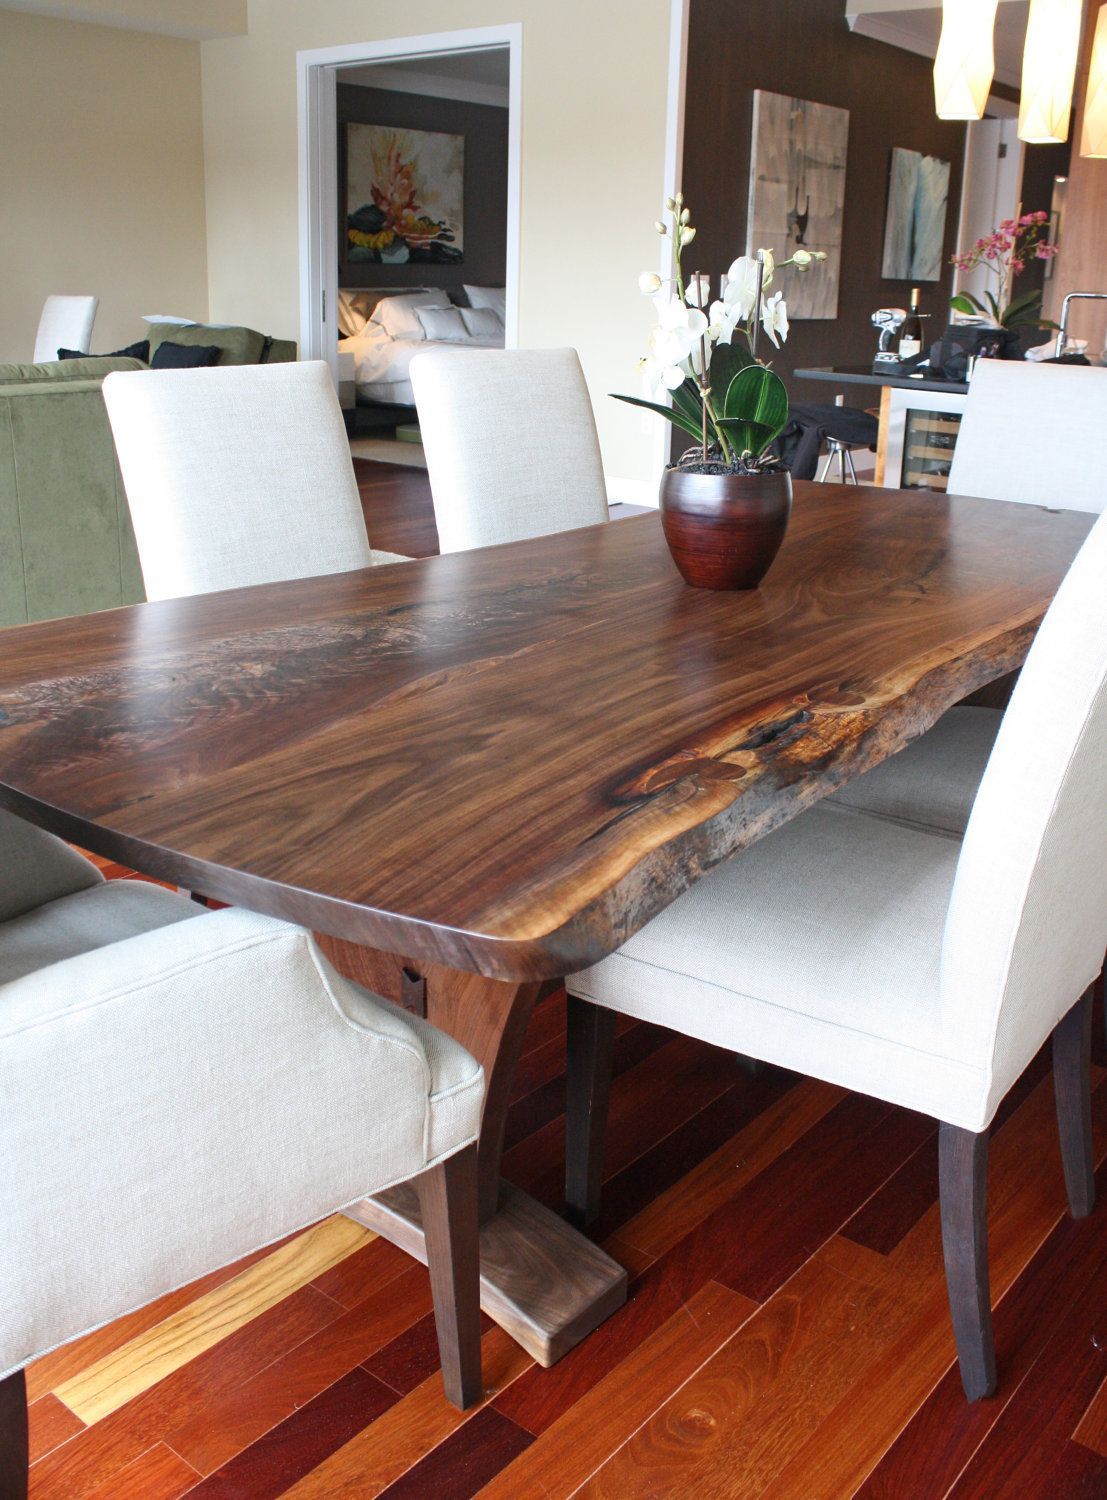 Dining Table - Modern with Walnut Slab | dining tables ...